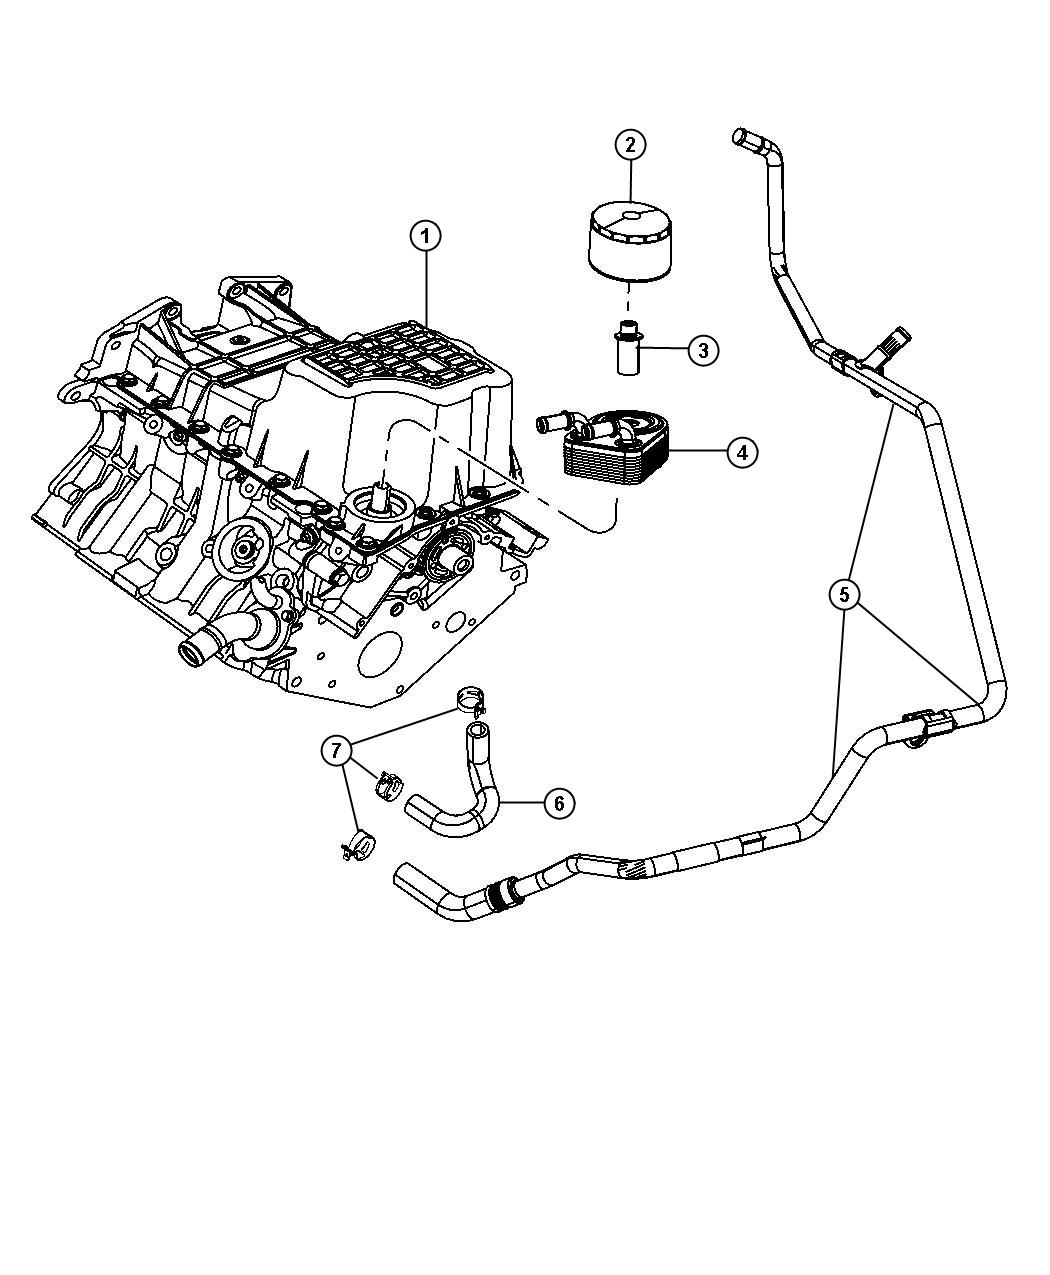 2004 chrysler pacifica engine diagram 1992 dodge dakota radio wiring concorde free